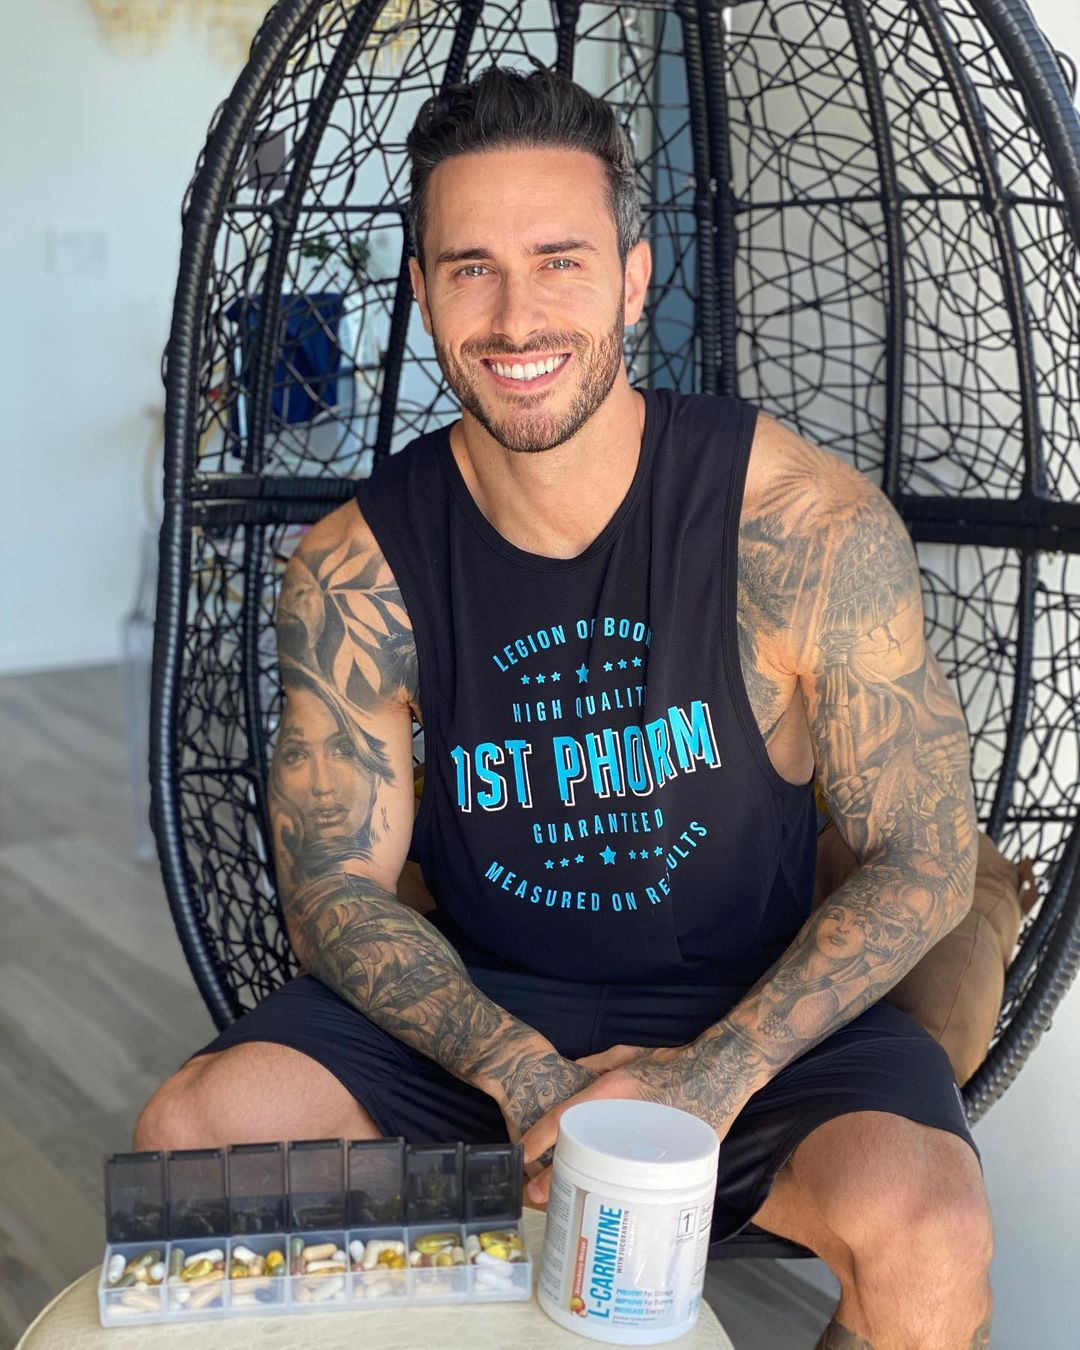 male and mike chabot image